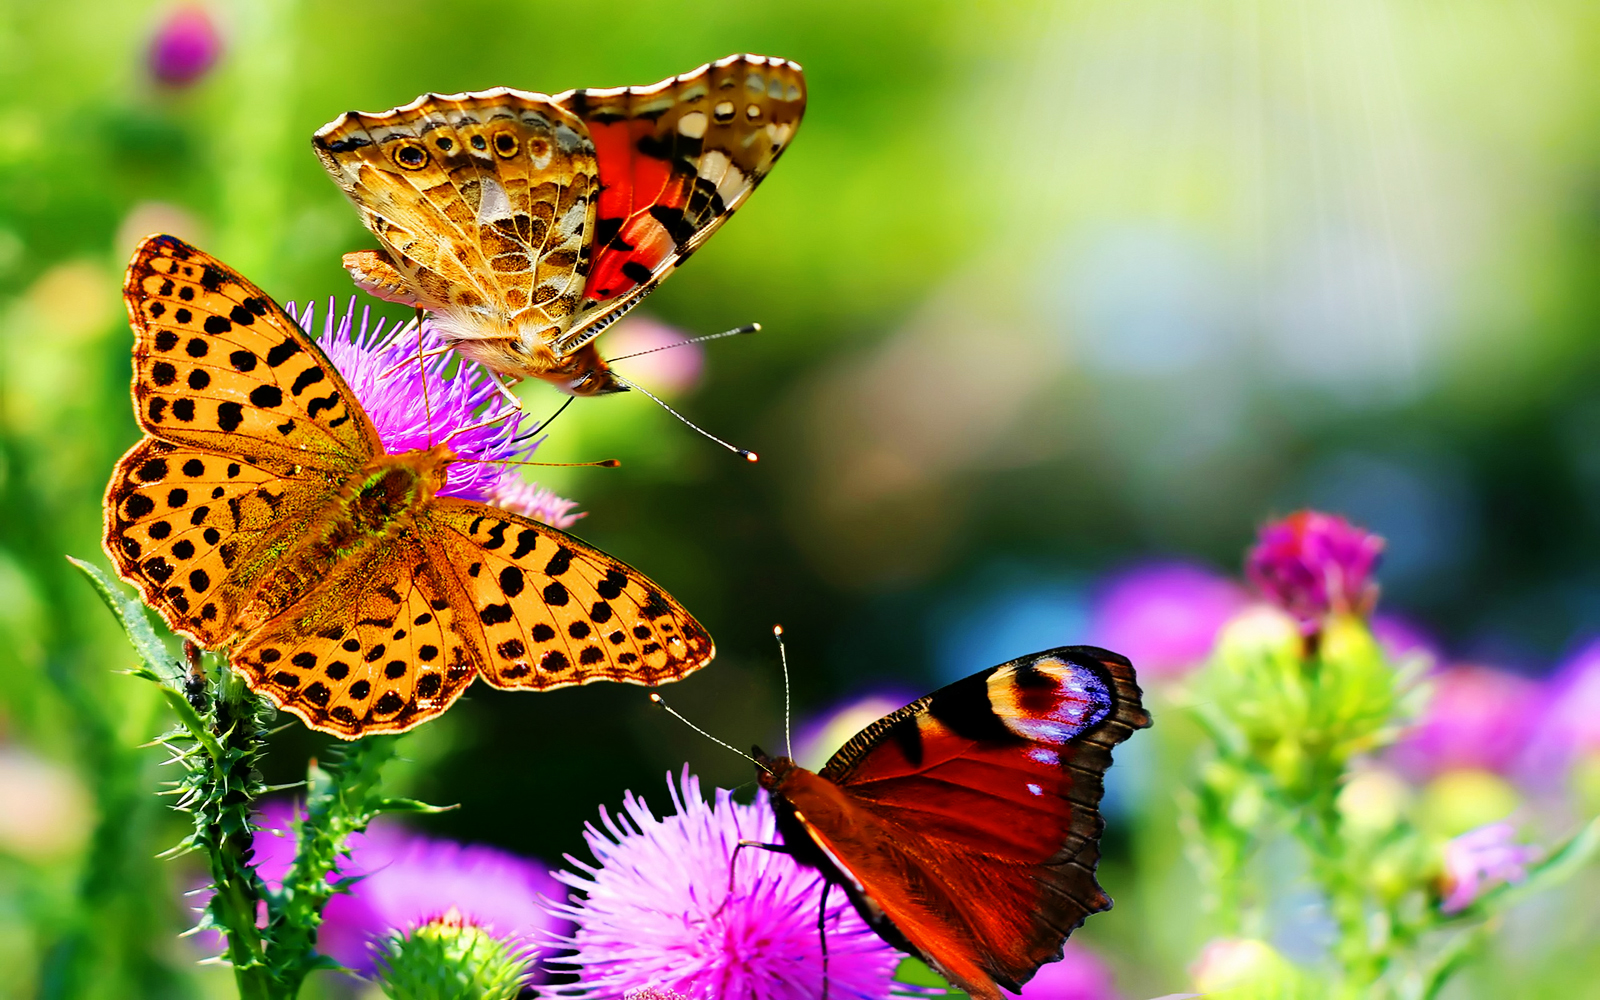 Beautiful hd wallpapers of animals